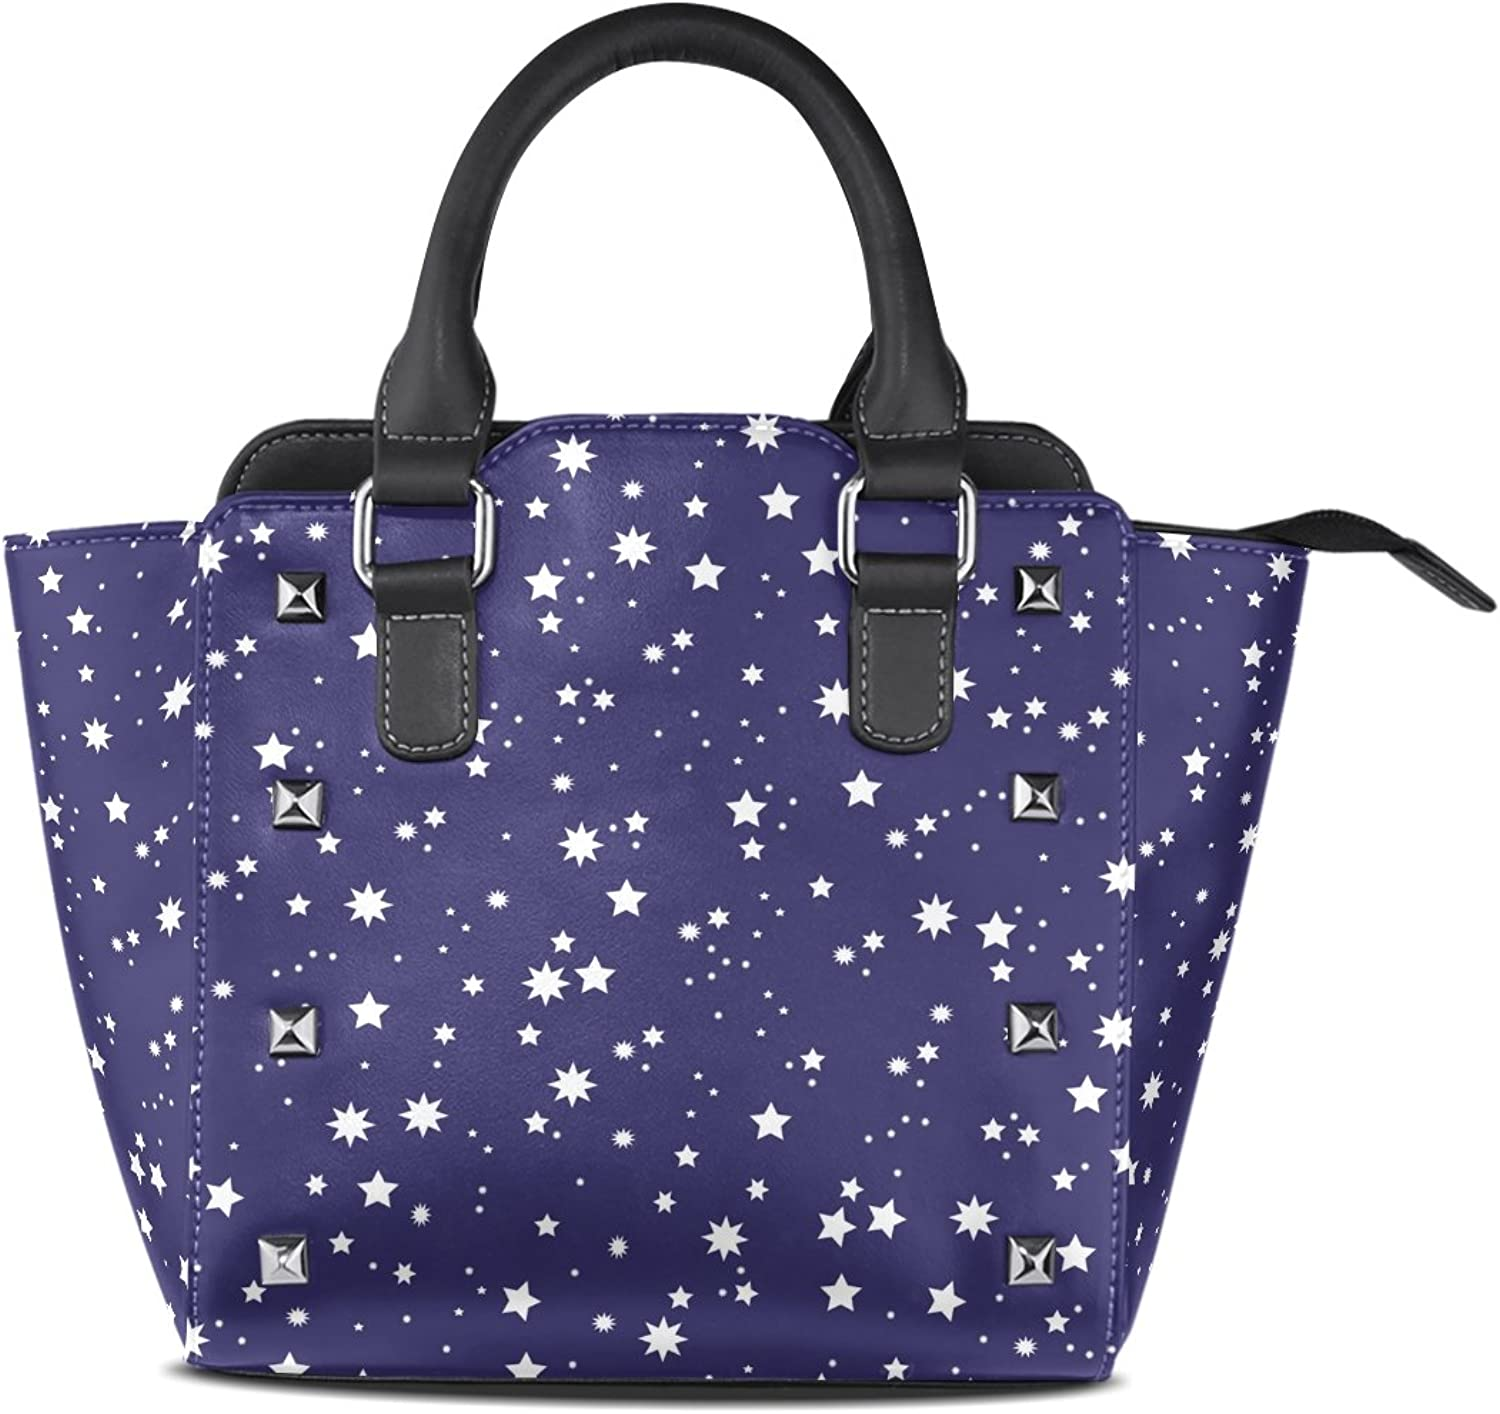 My Little Nest Women's Top Handle Satchel Handbag White Stars Navy bluee Ladies PU Leather Shoulder Bag Crossbody Bag